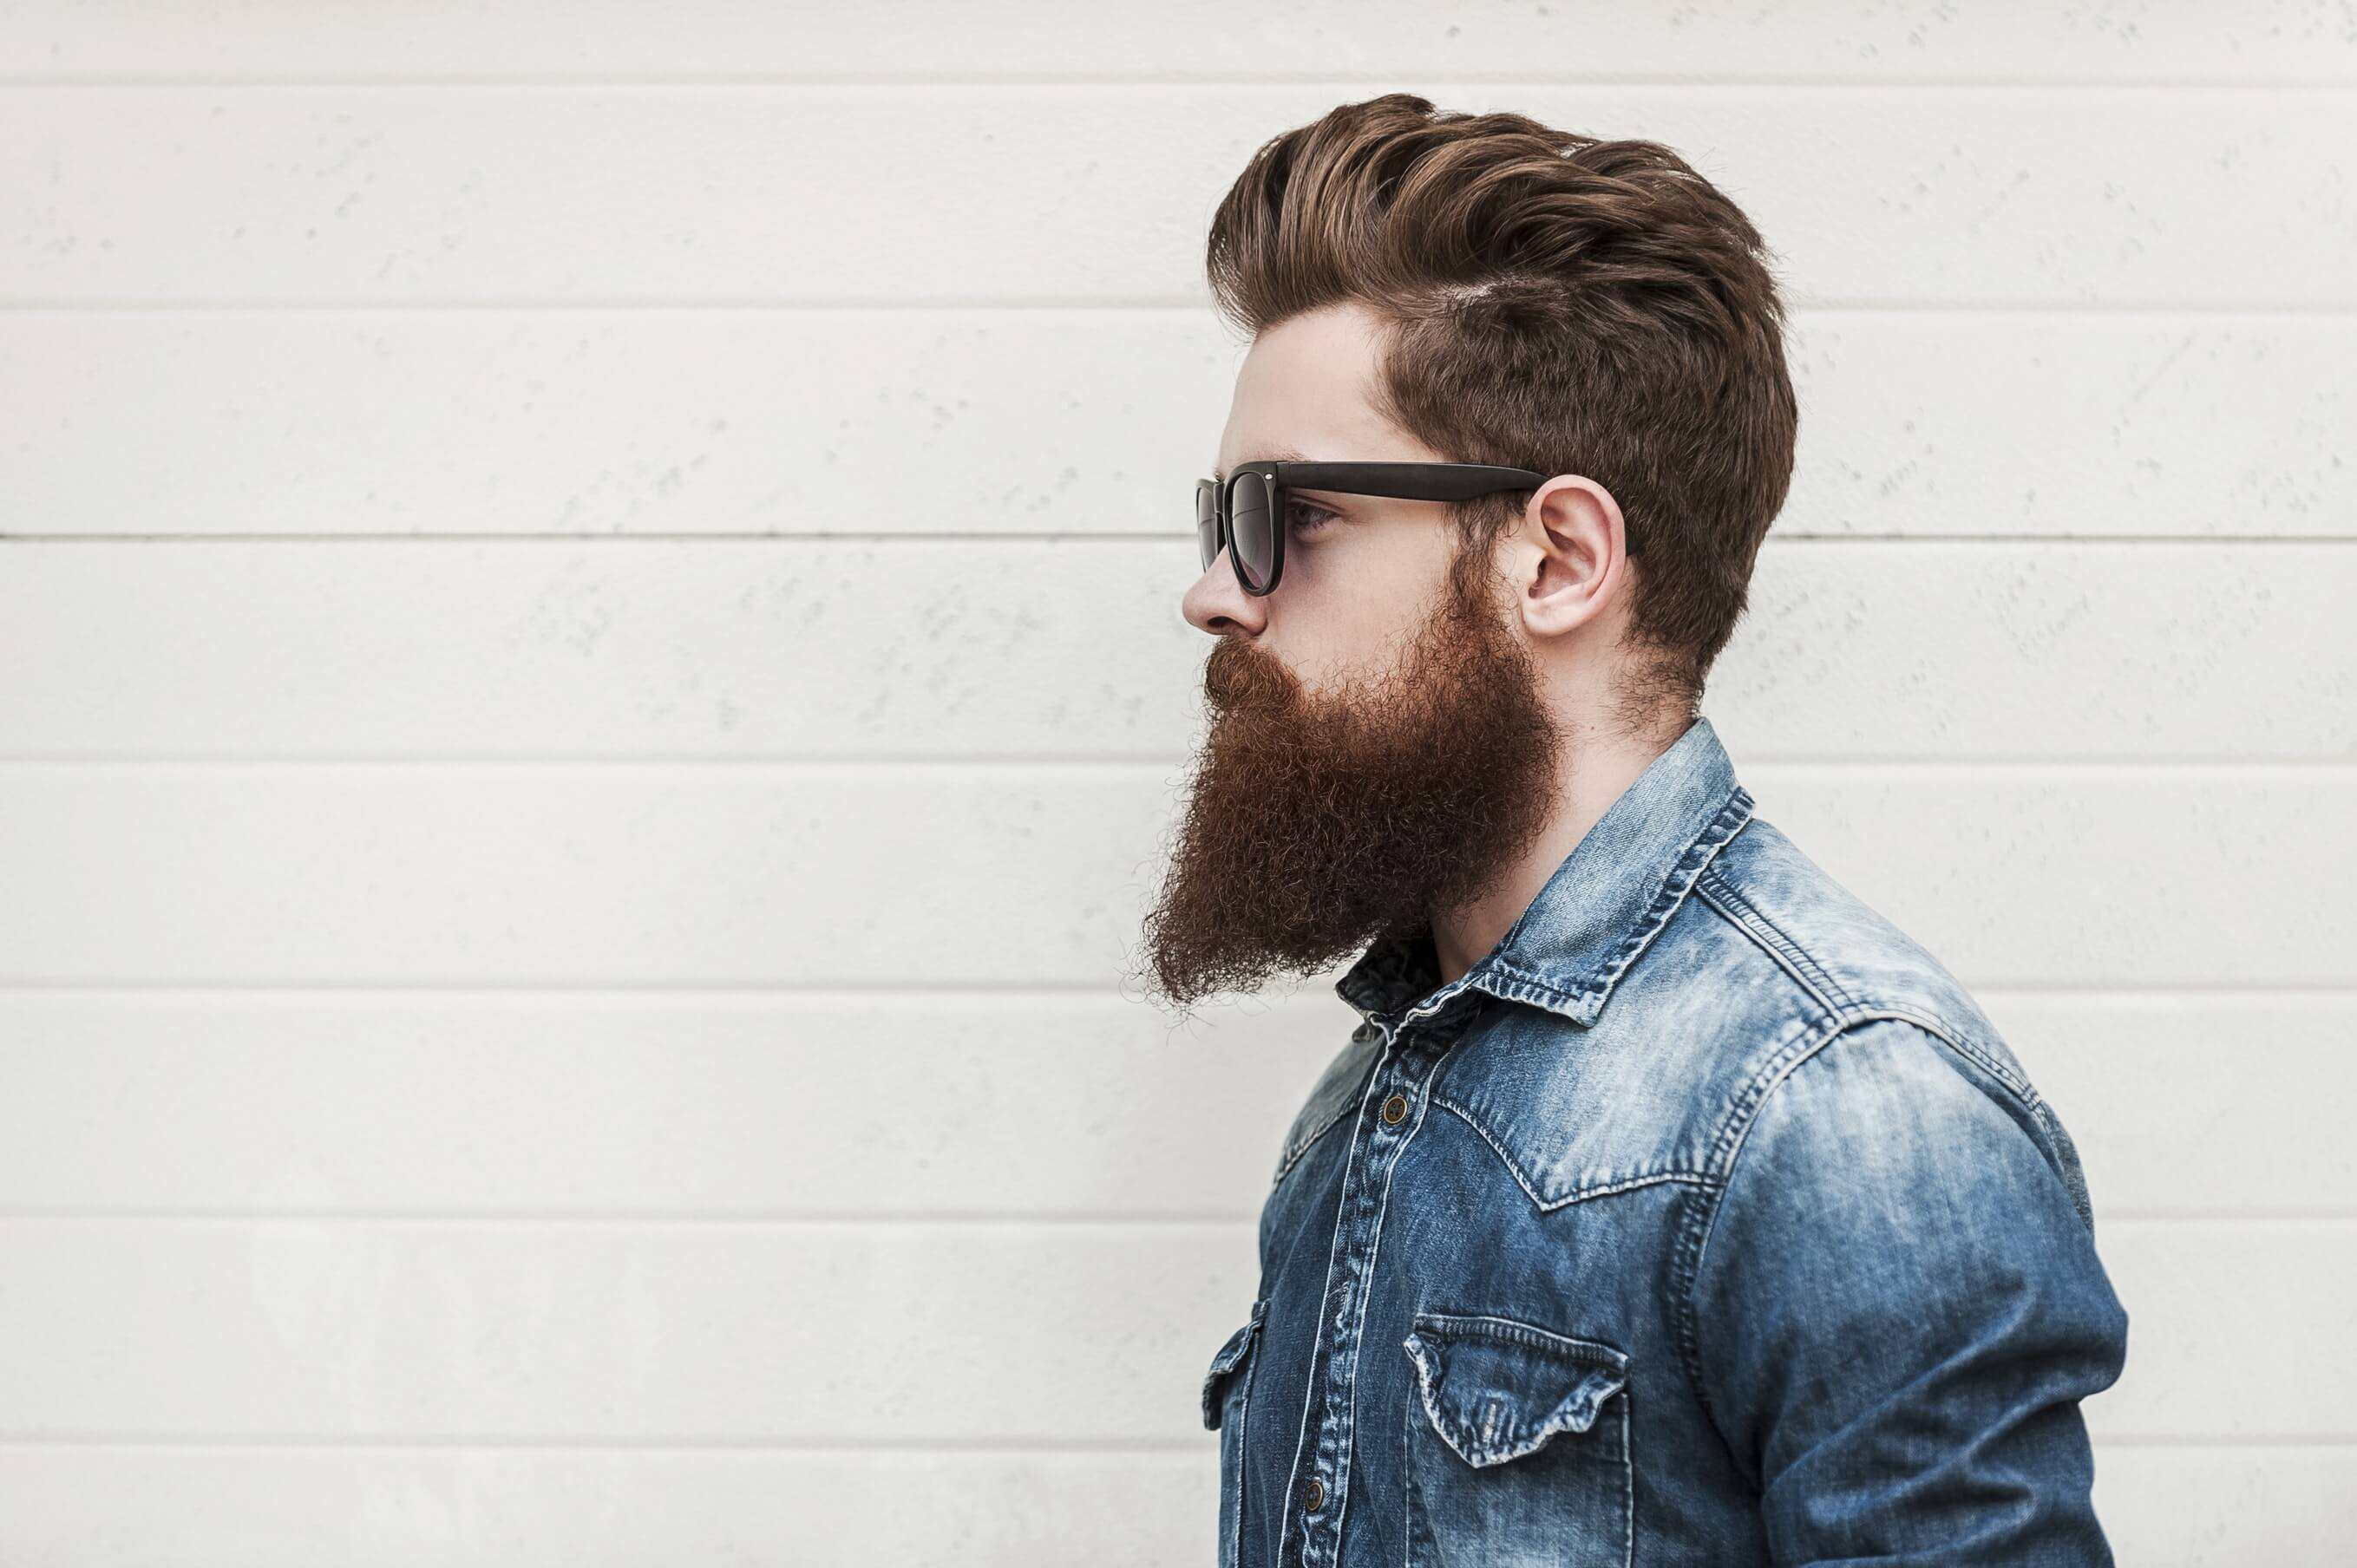 Tremendous 5 Styling Tricks To Make Your Taper Fade Haircut Unique Short Hairstyles Gunalazisus